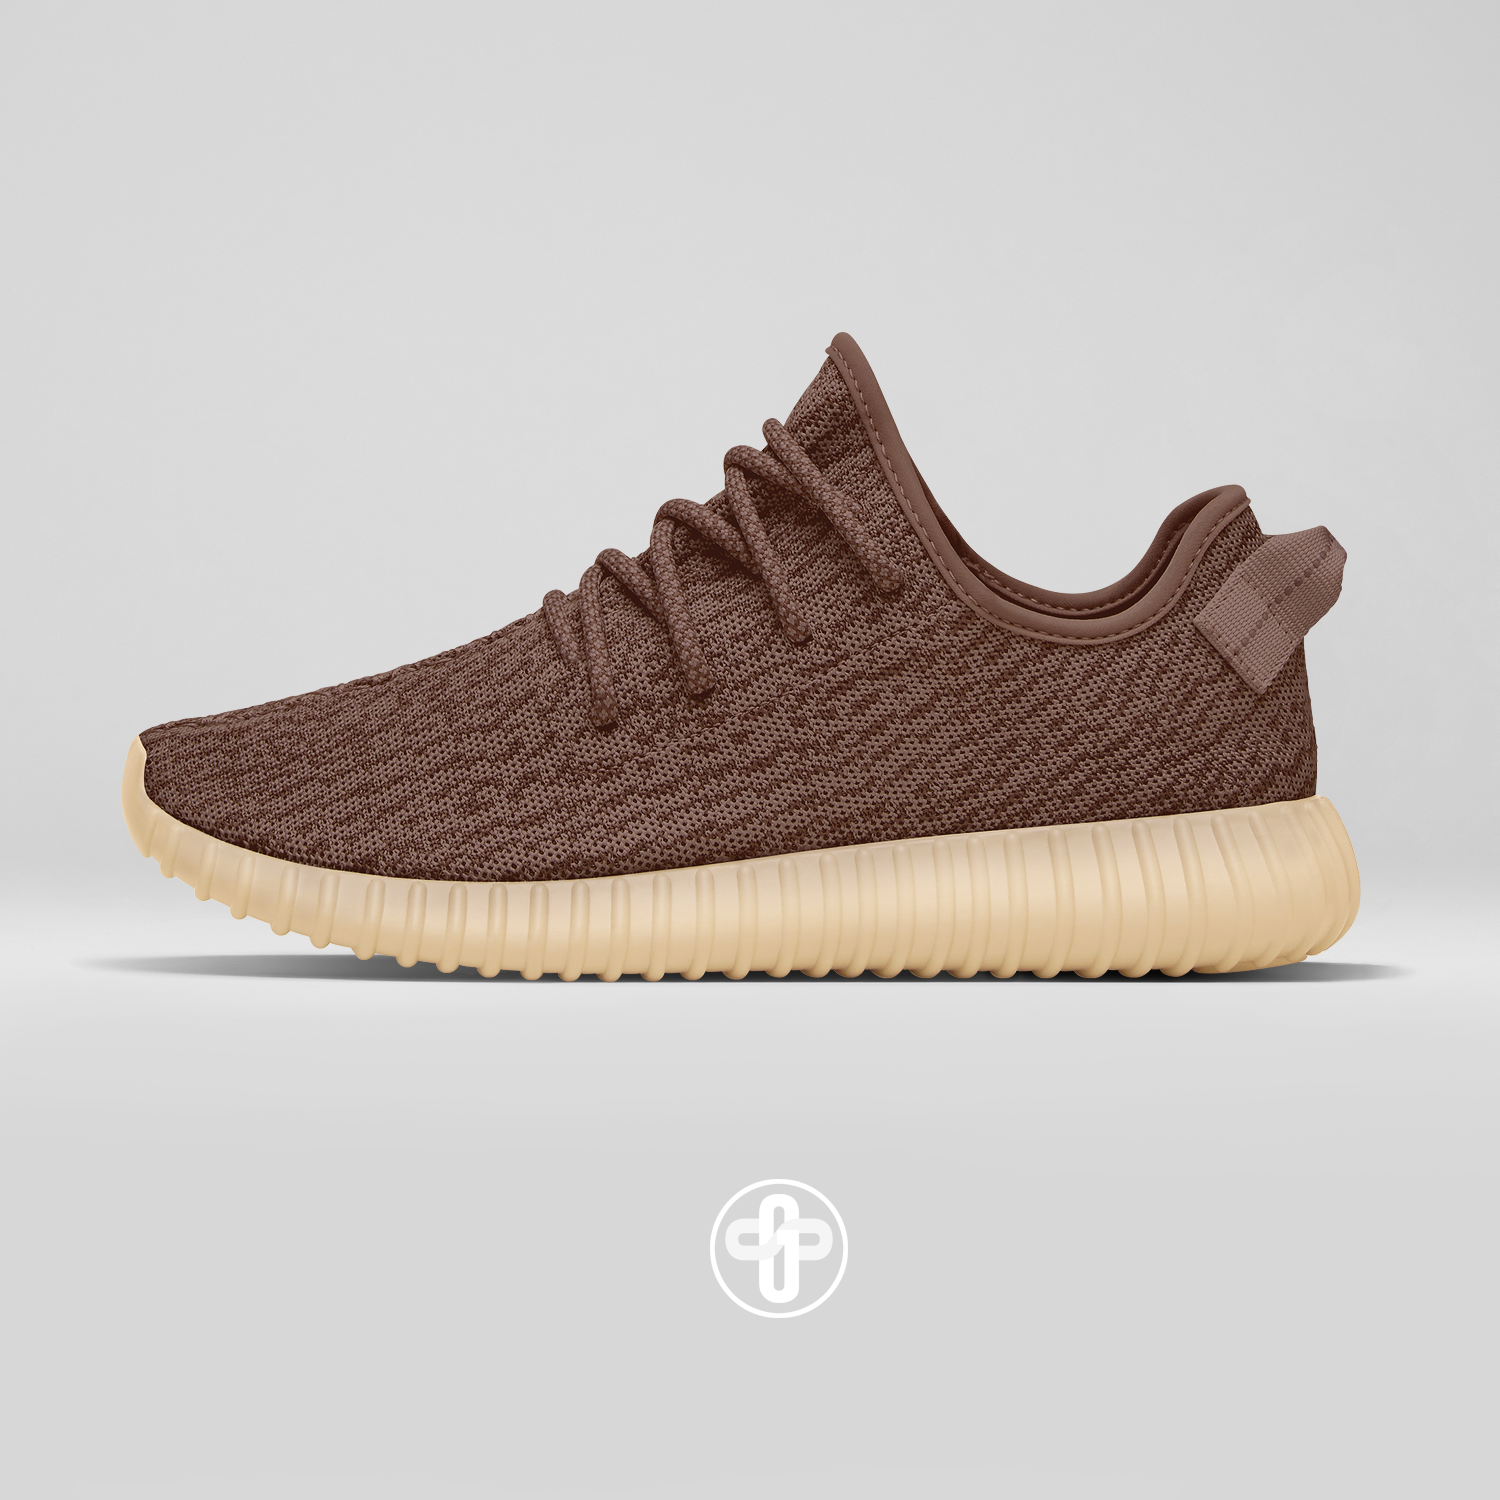 7ff6e65dc3982 Adidas Yeezy Boost 350 Chocolate Brown Yeezy Boost 750